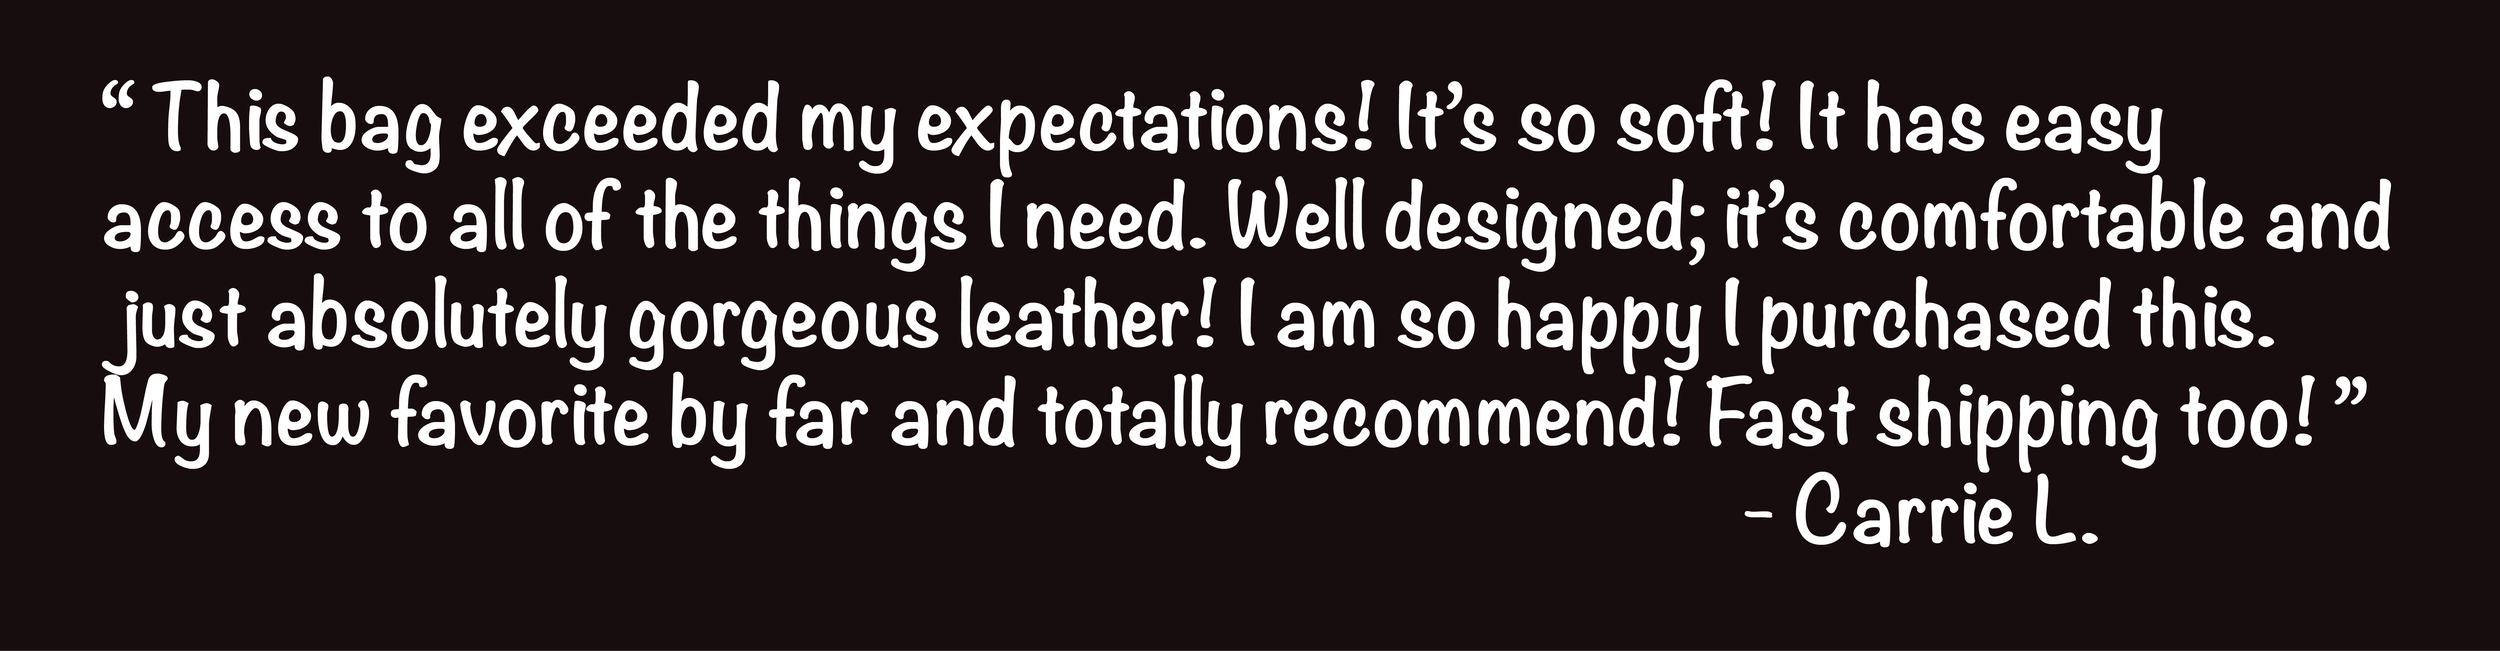 Testimonial Banners-07.png